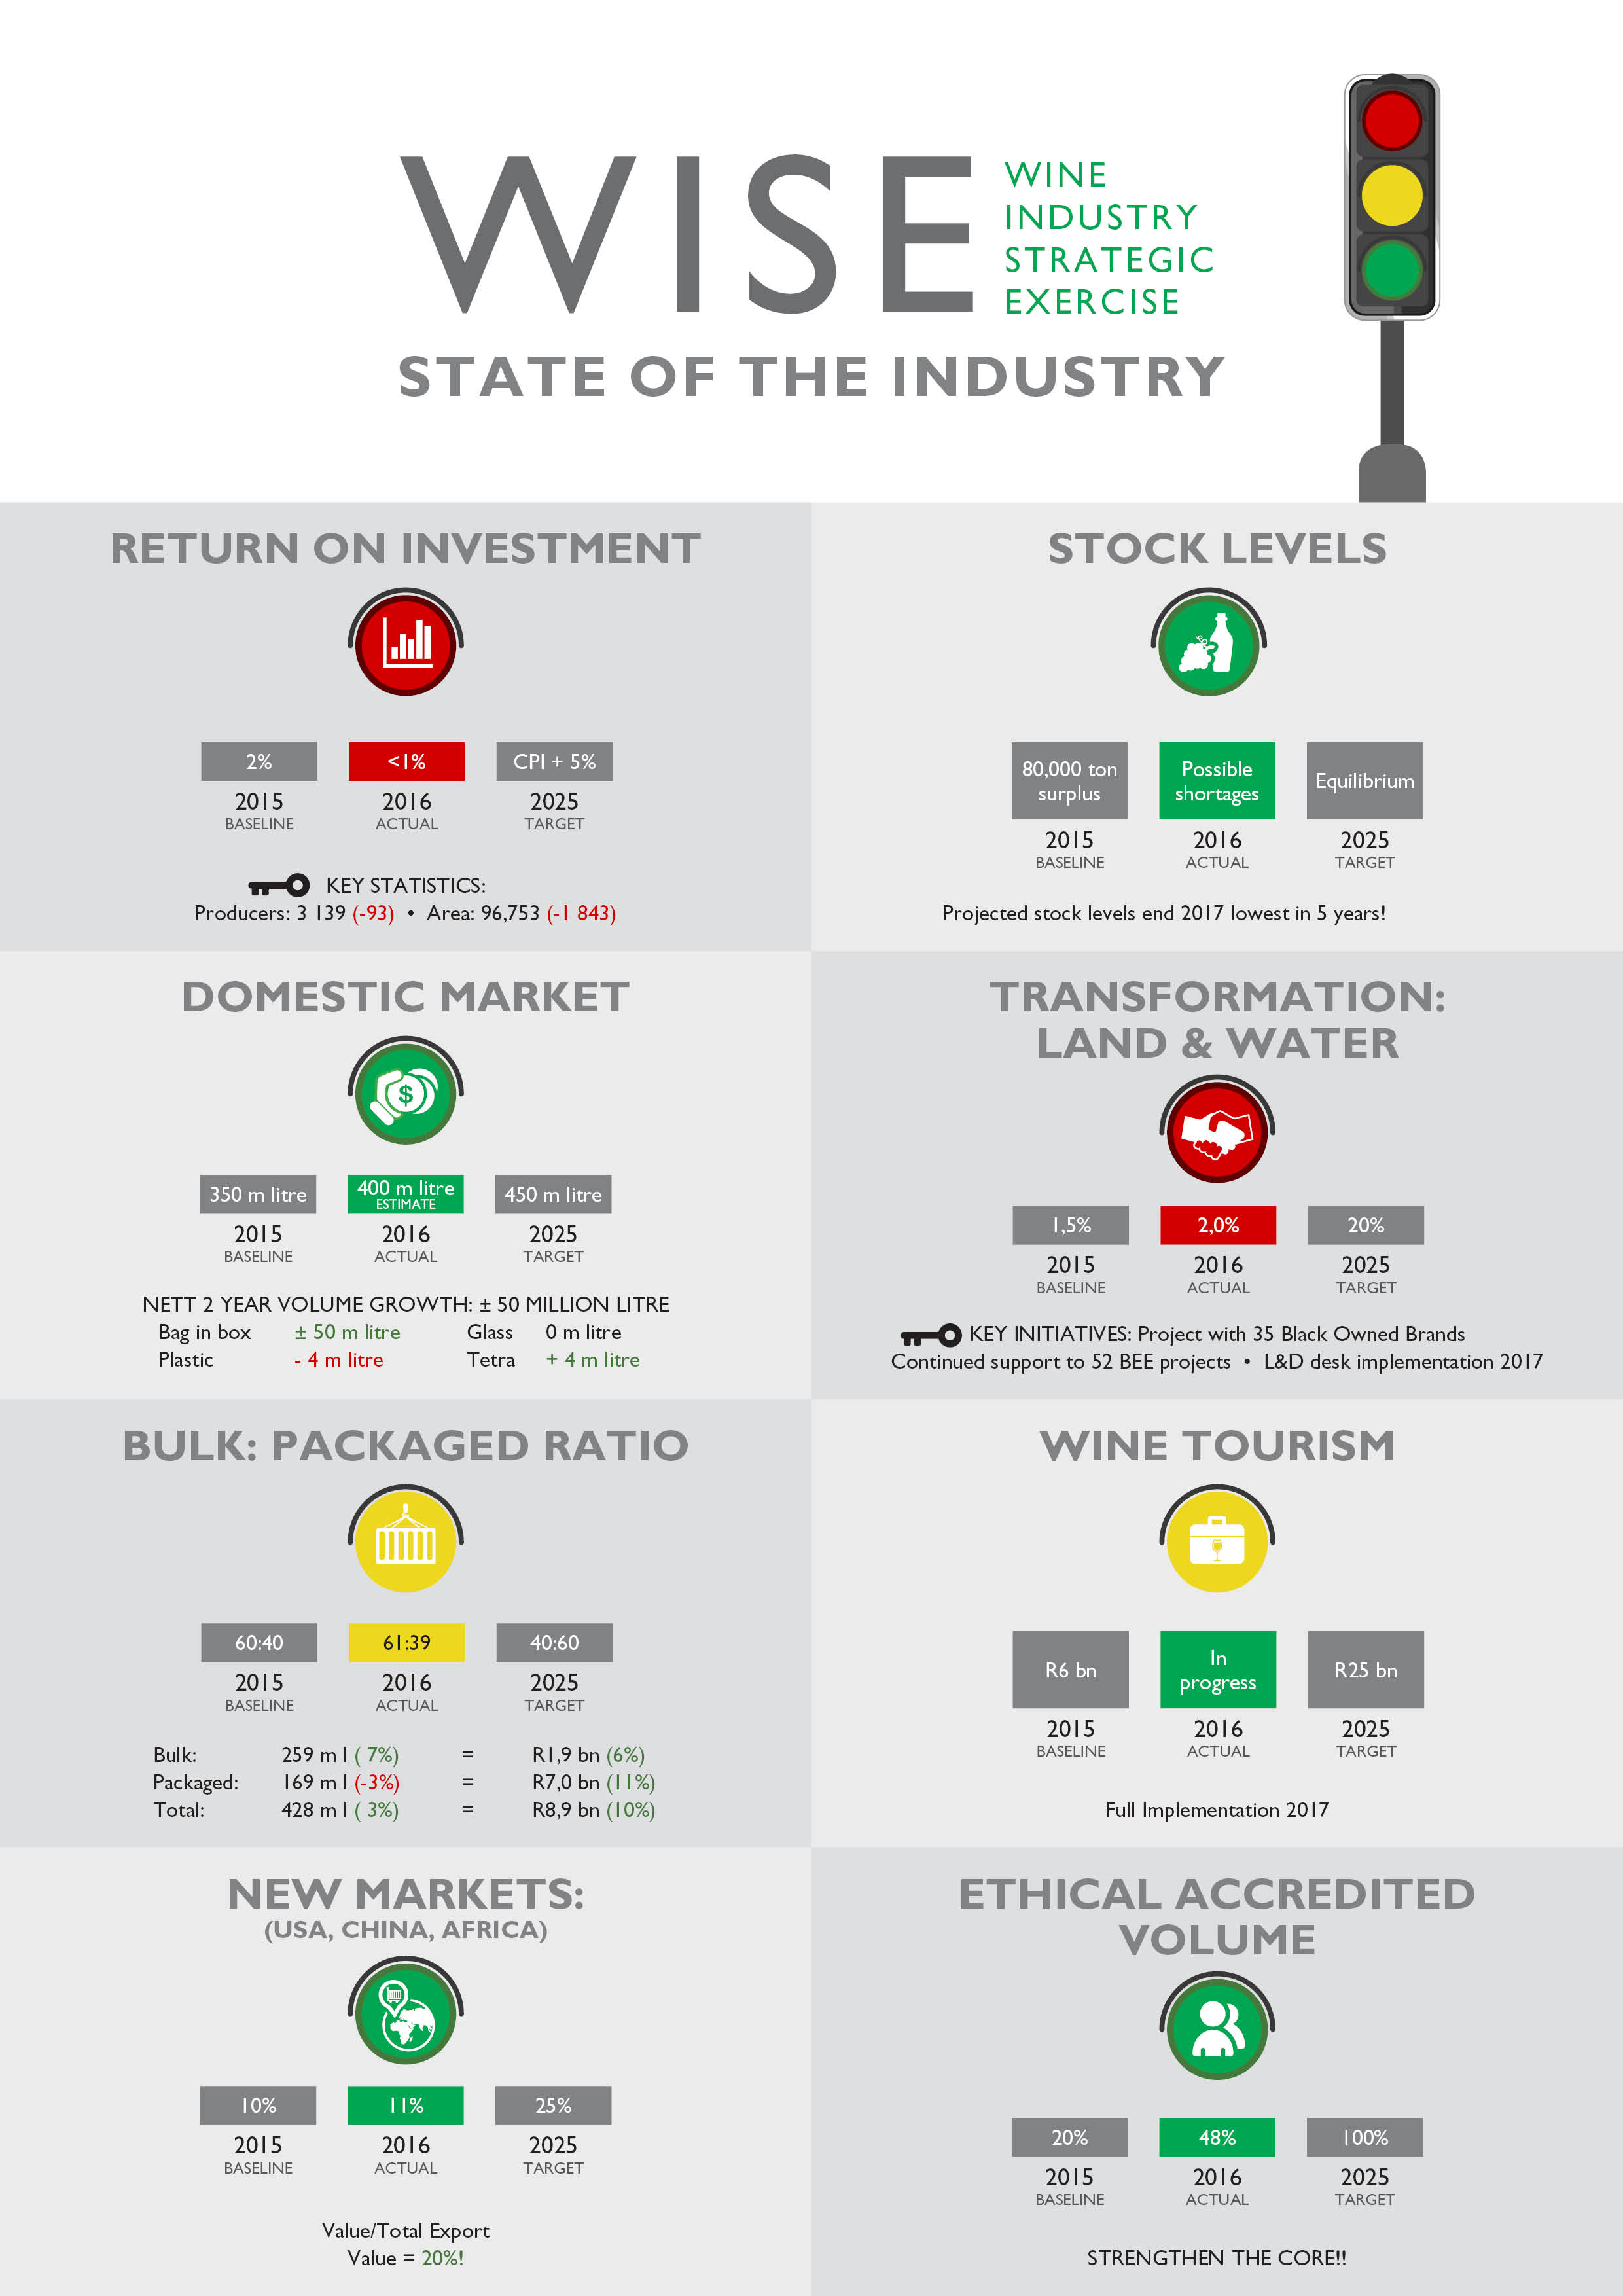 Wise_state_of_the_industry_Jan2017_2